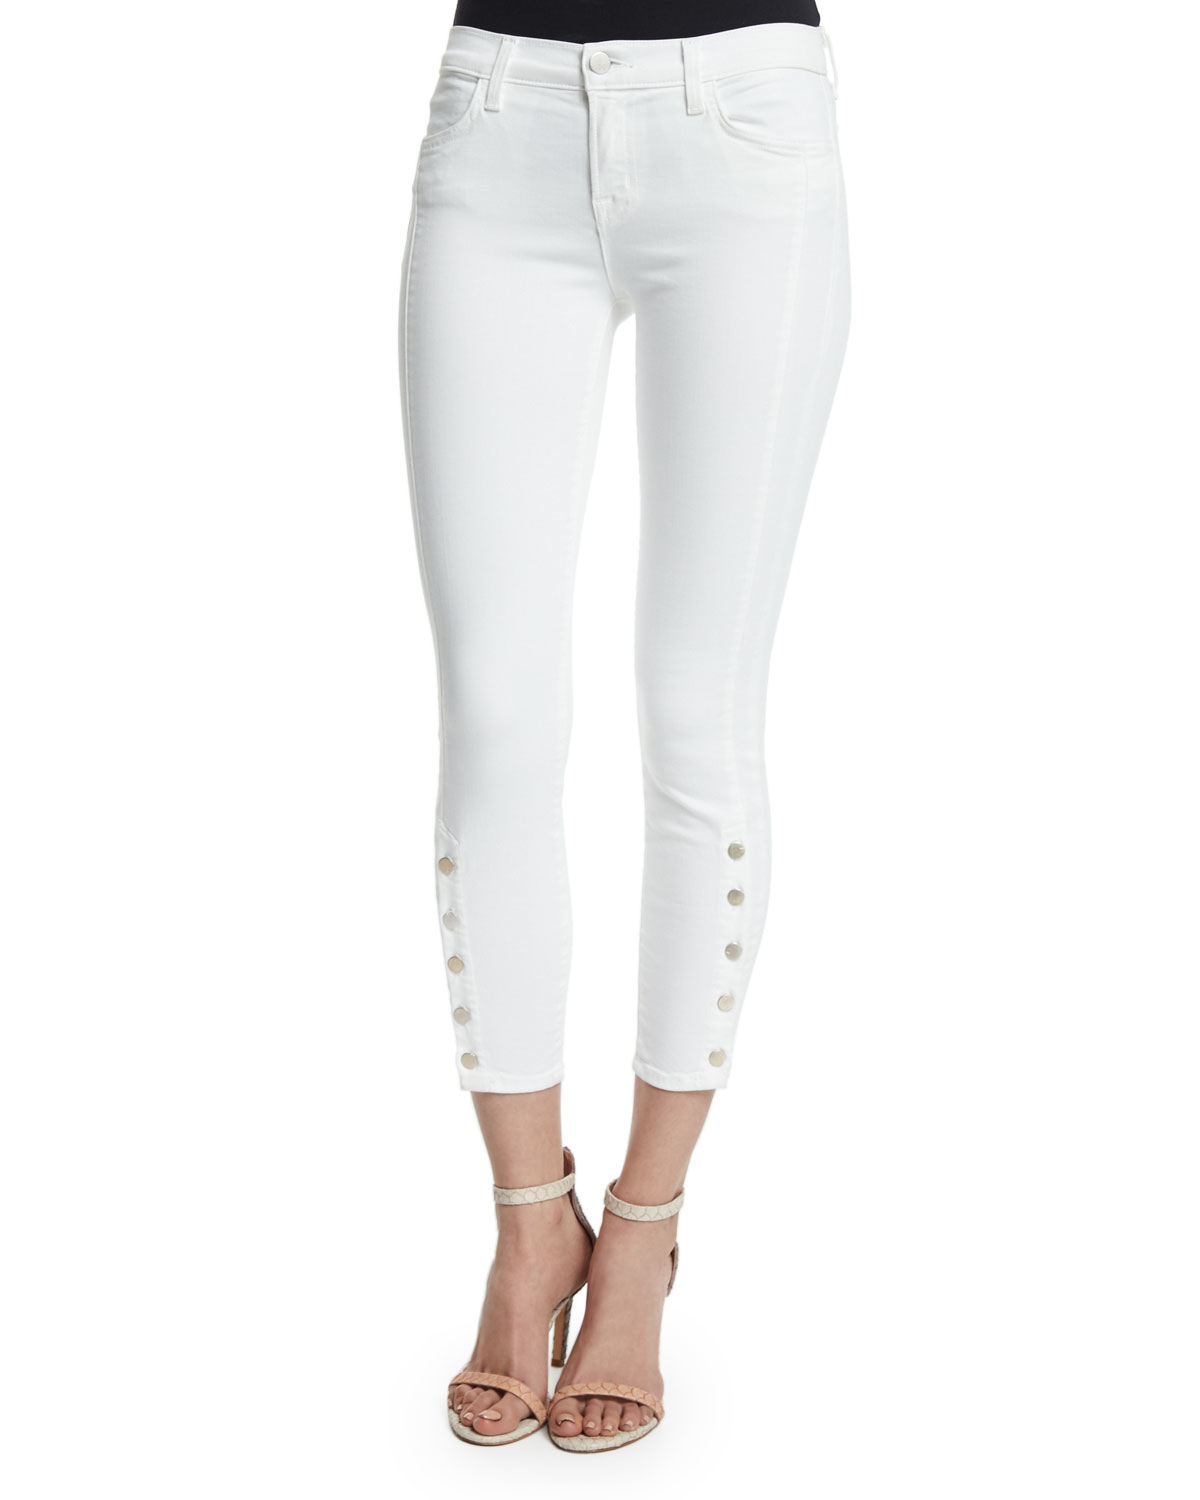 New For Sale cropped jeans - White J Brand Online Store ky3a2eVl3